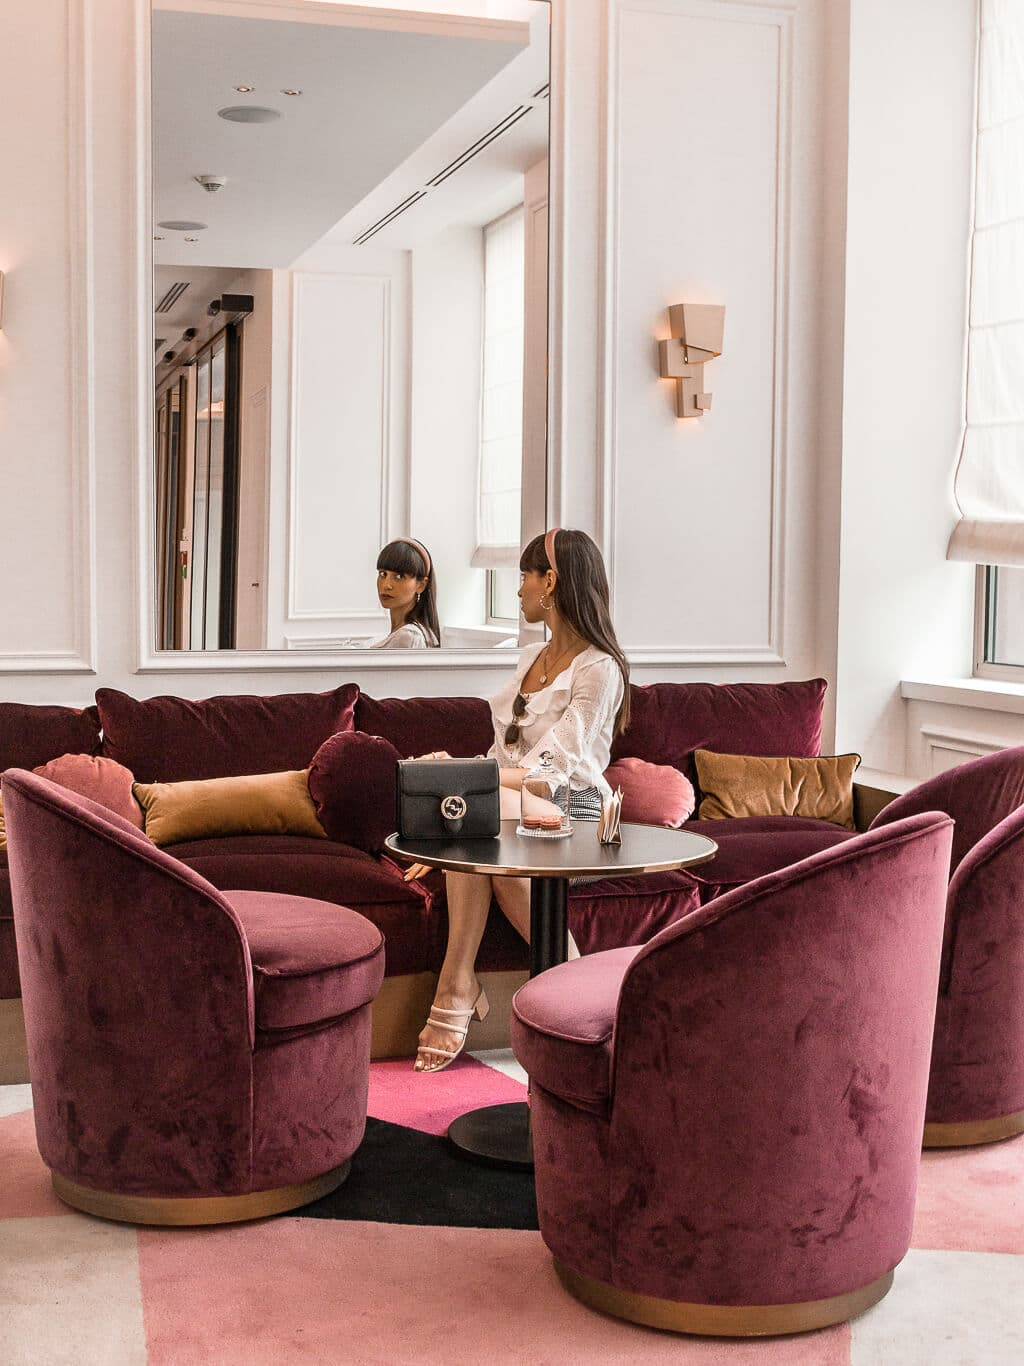 Luxury hotel in Paris - Fauchon L'Hôtel Paris